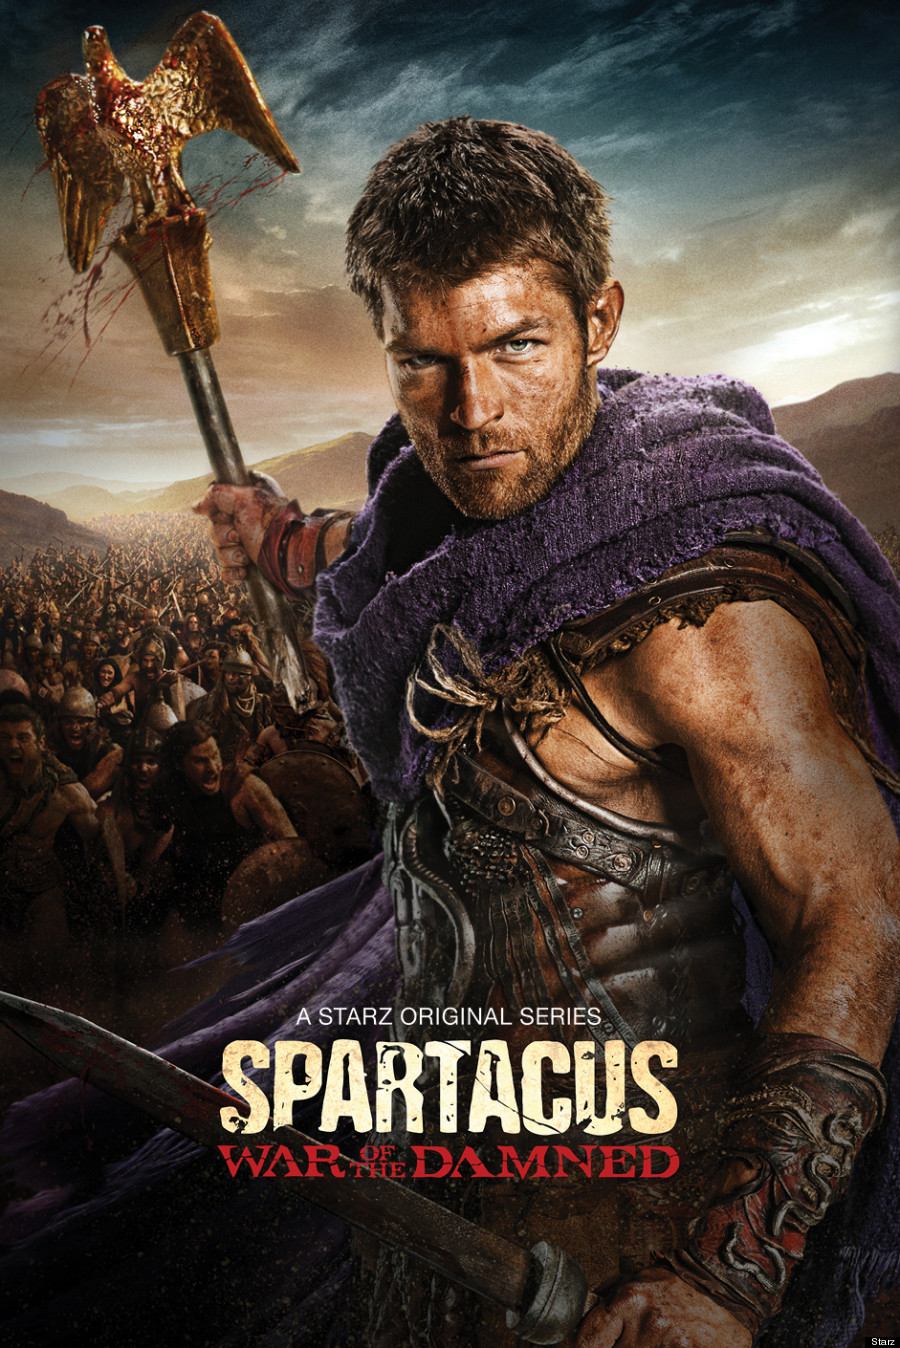 O-SPARTACUS-WAR-OF-THE-DAMNED-900.jpg